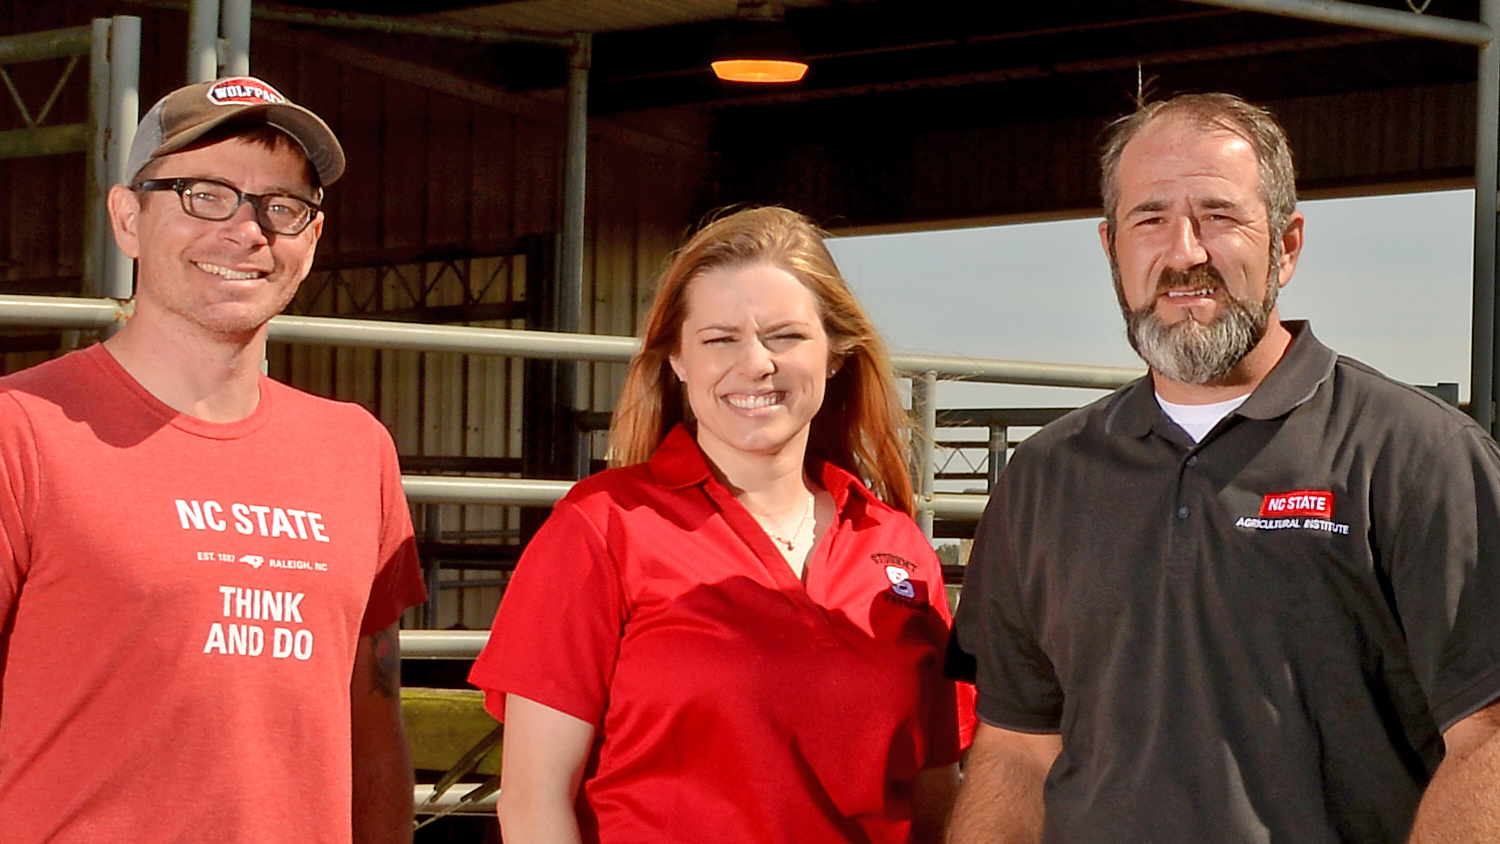 Alumni of NCState's Agricultural Institute